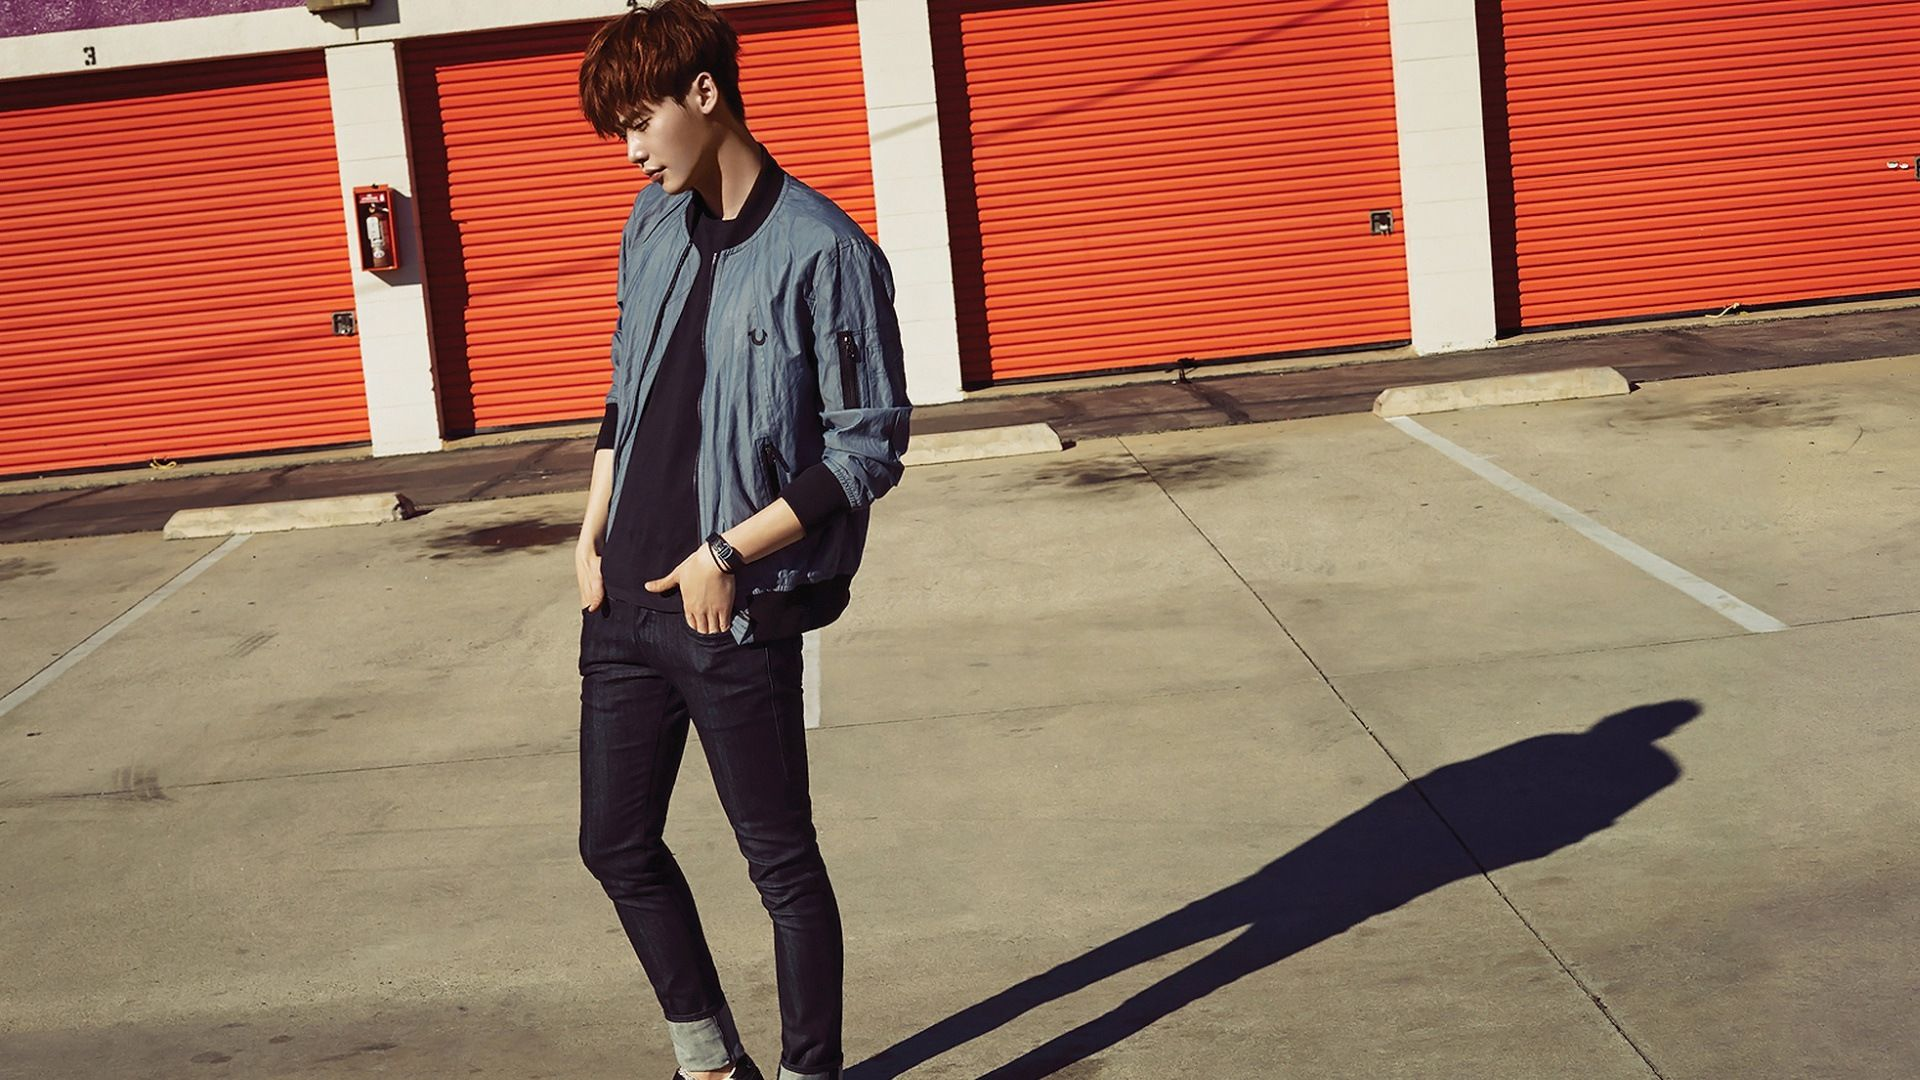 Download Wallpaper Lee Jong Suk Aesthetic HD